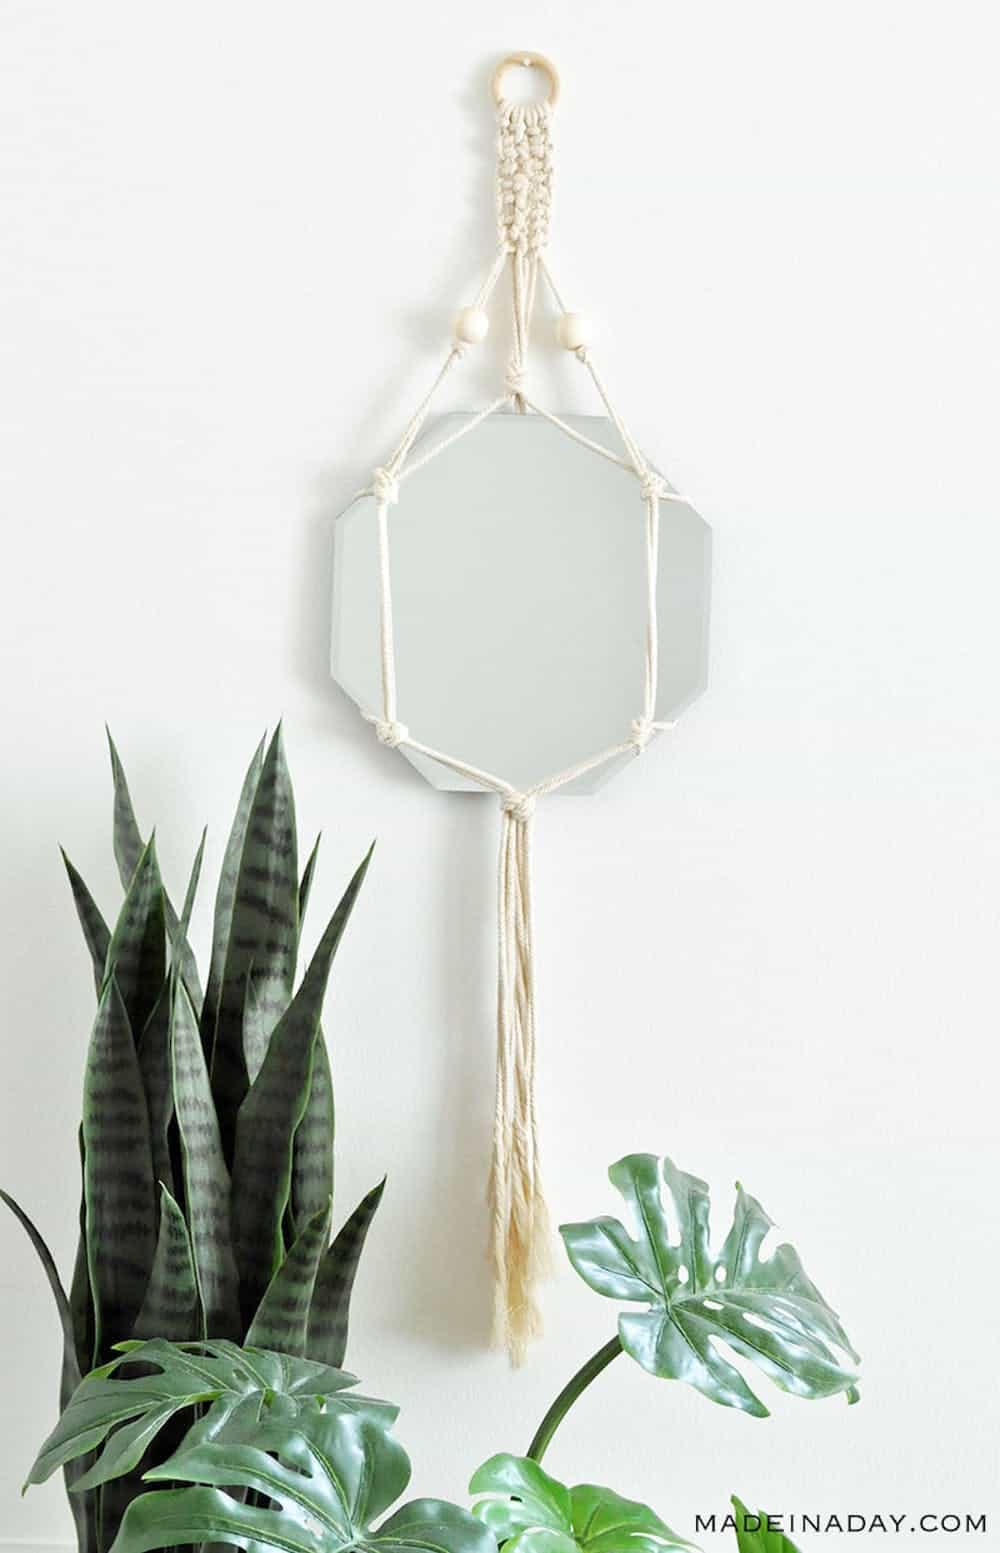 Diy boho macrame mirror wall hanging